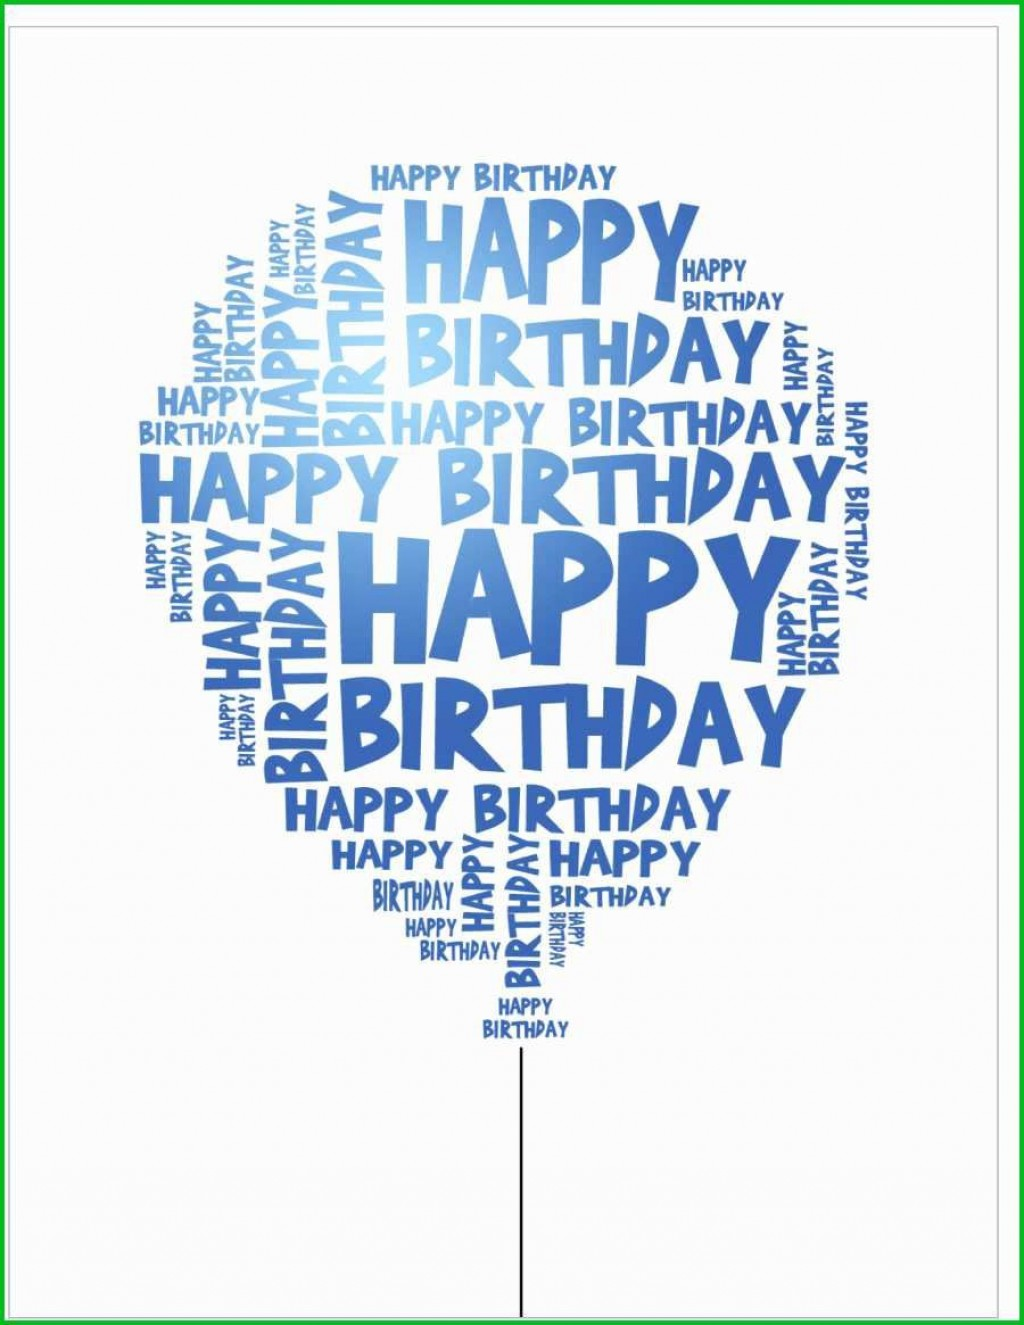 004 Fantastic Happy Birthday Card Template For Word Idea Large